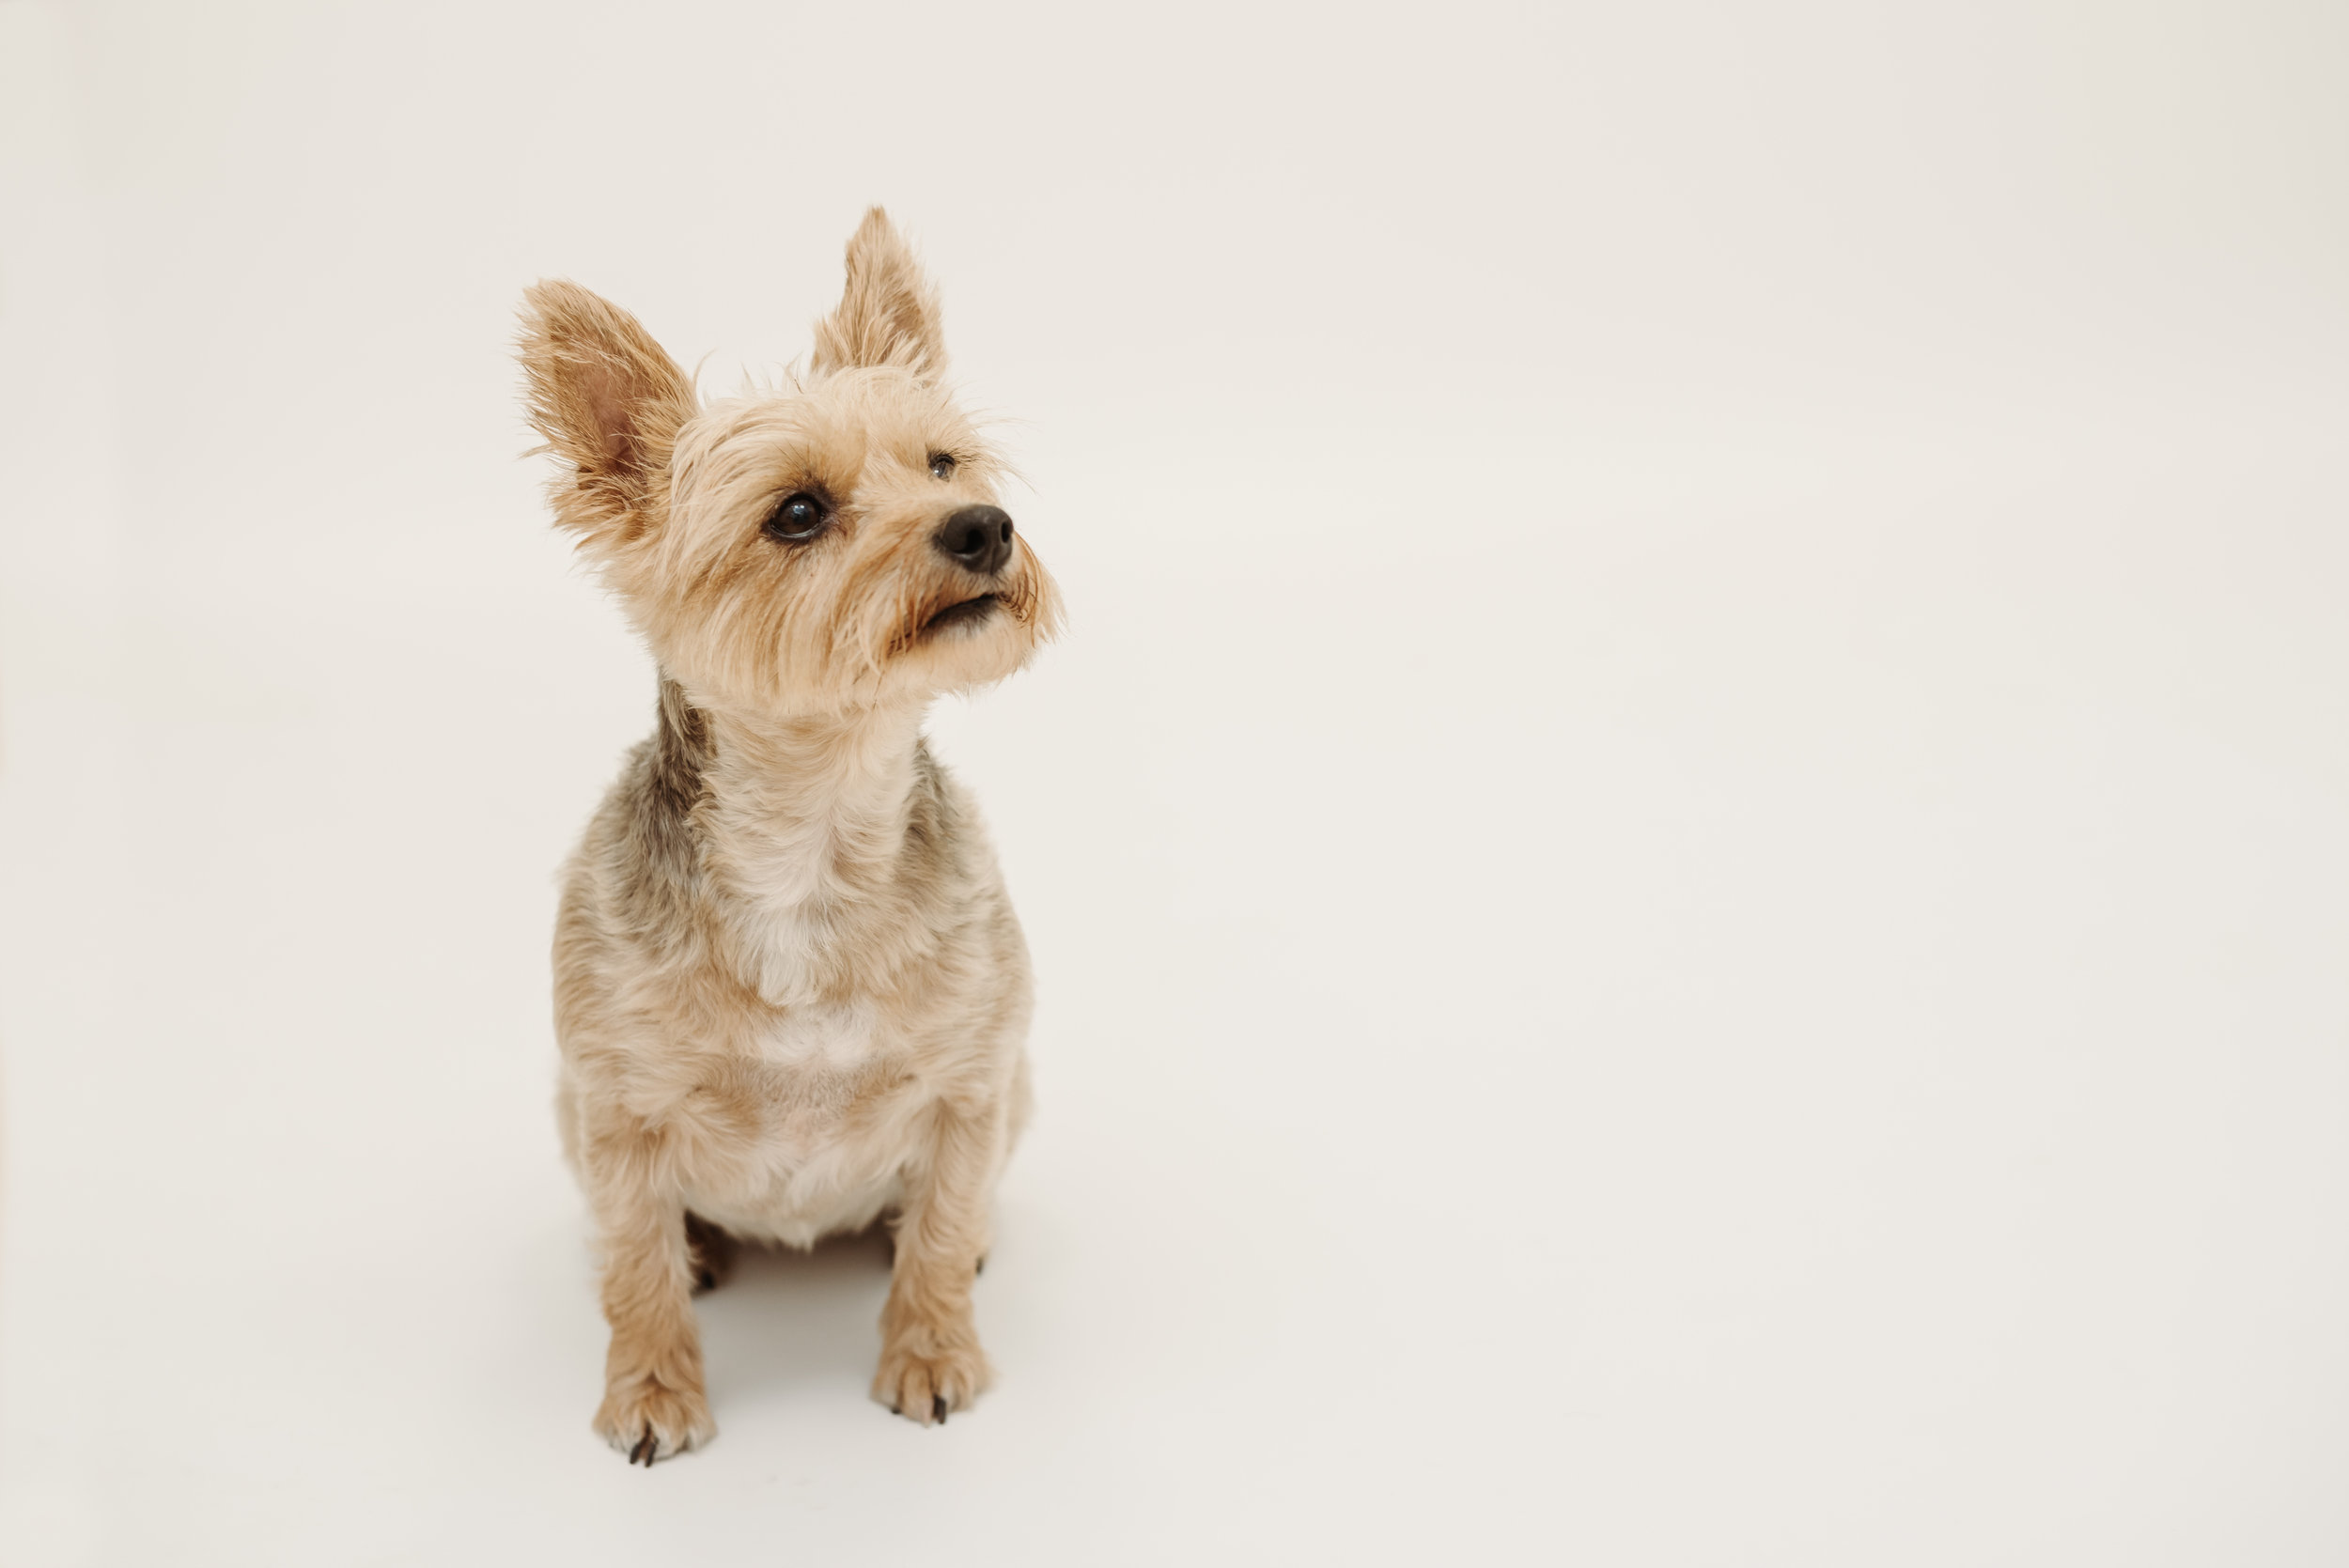 Yorkie photo shoot - Lancashire